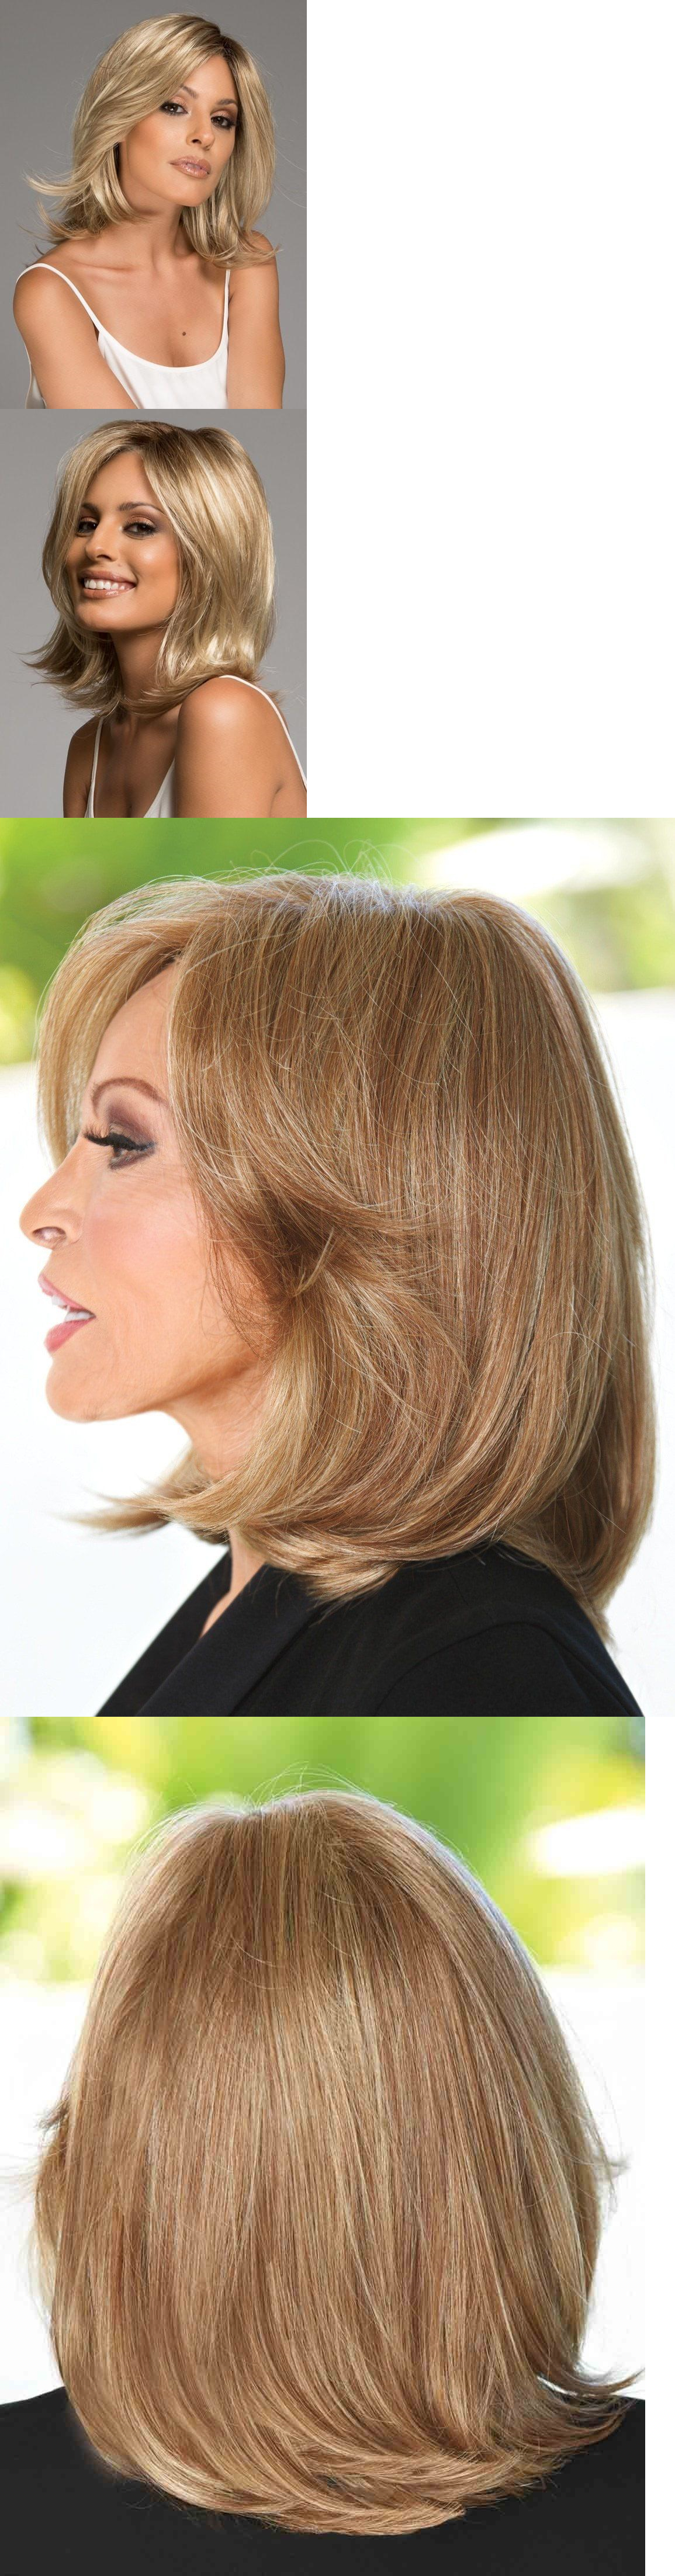 Wigs and Hairpieces Pure Allure Wig By Raquel Welch – Shoulder